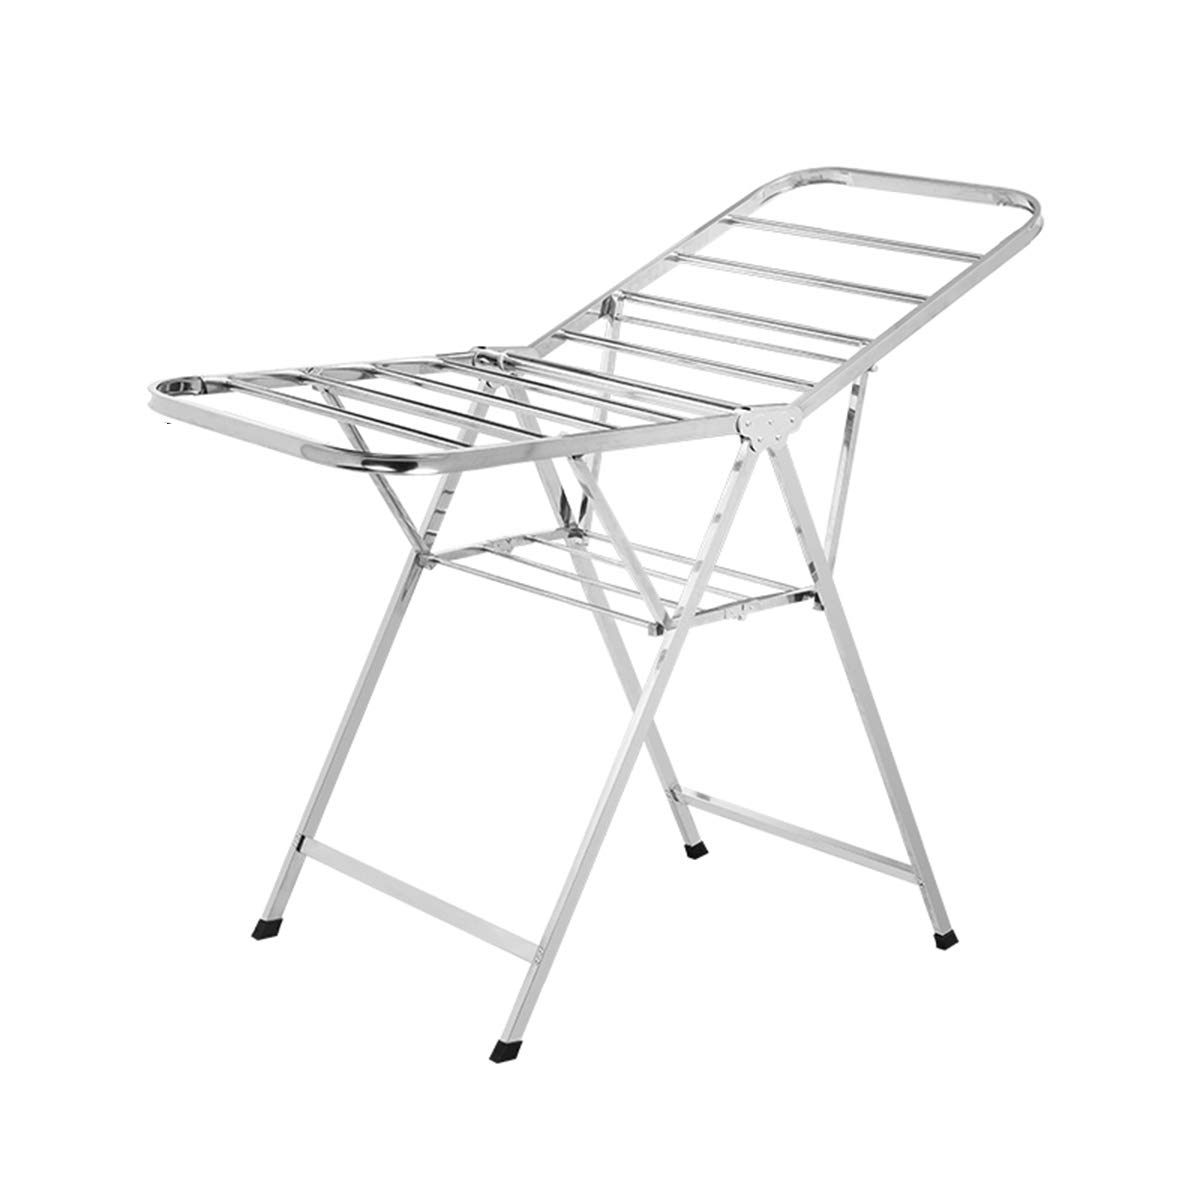 Folded Clothes Racks/Stainless Steel Plus Clothes Drying Racks/for Indoor and Outdoor, Balcony XIN XIN EU